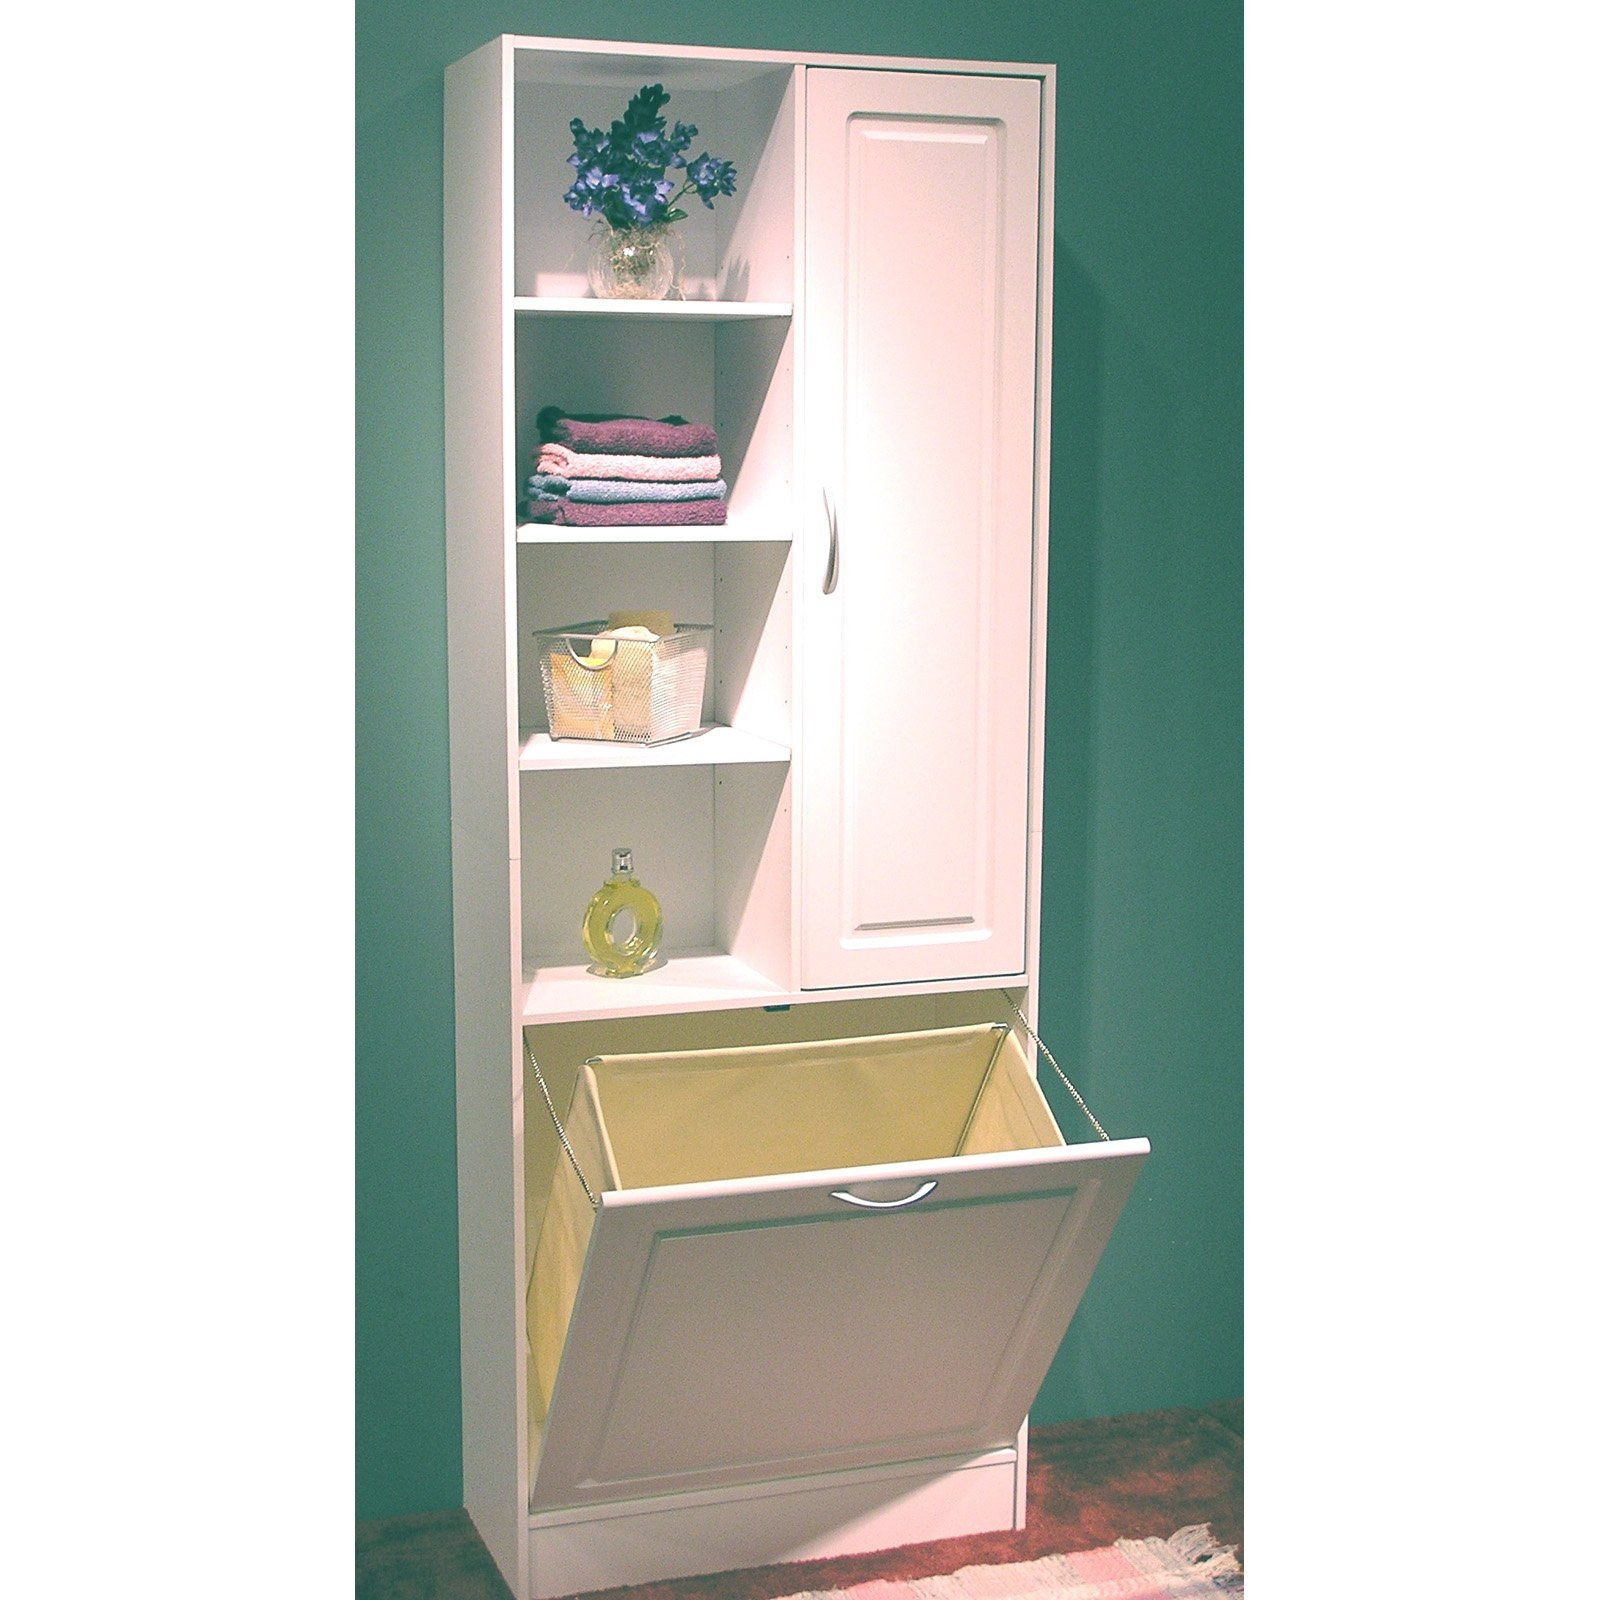 Bathroom Cabinet With Laundry Basket